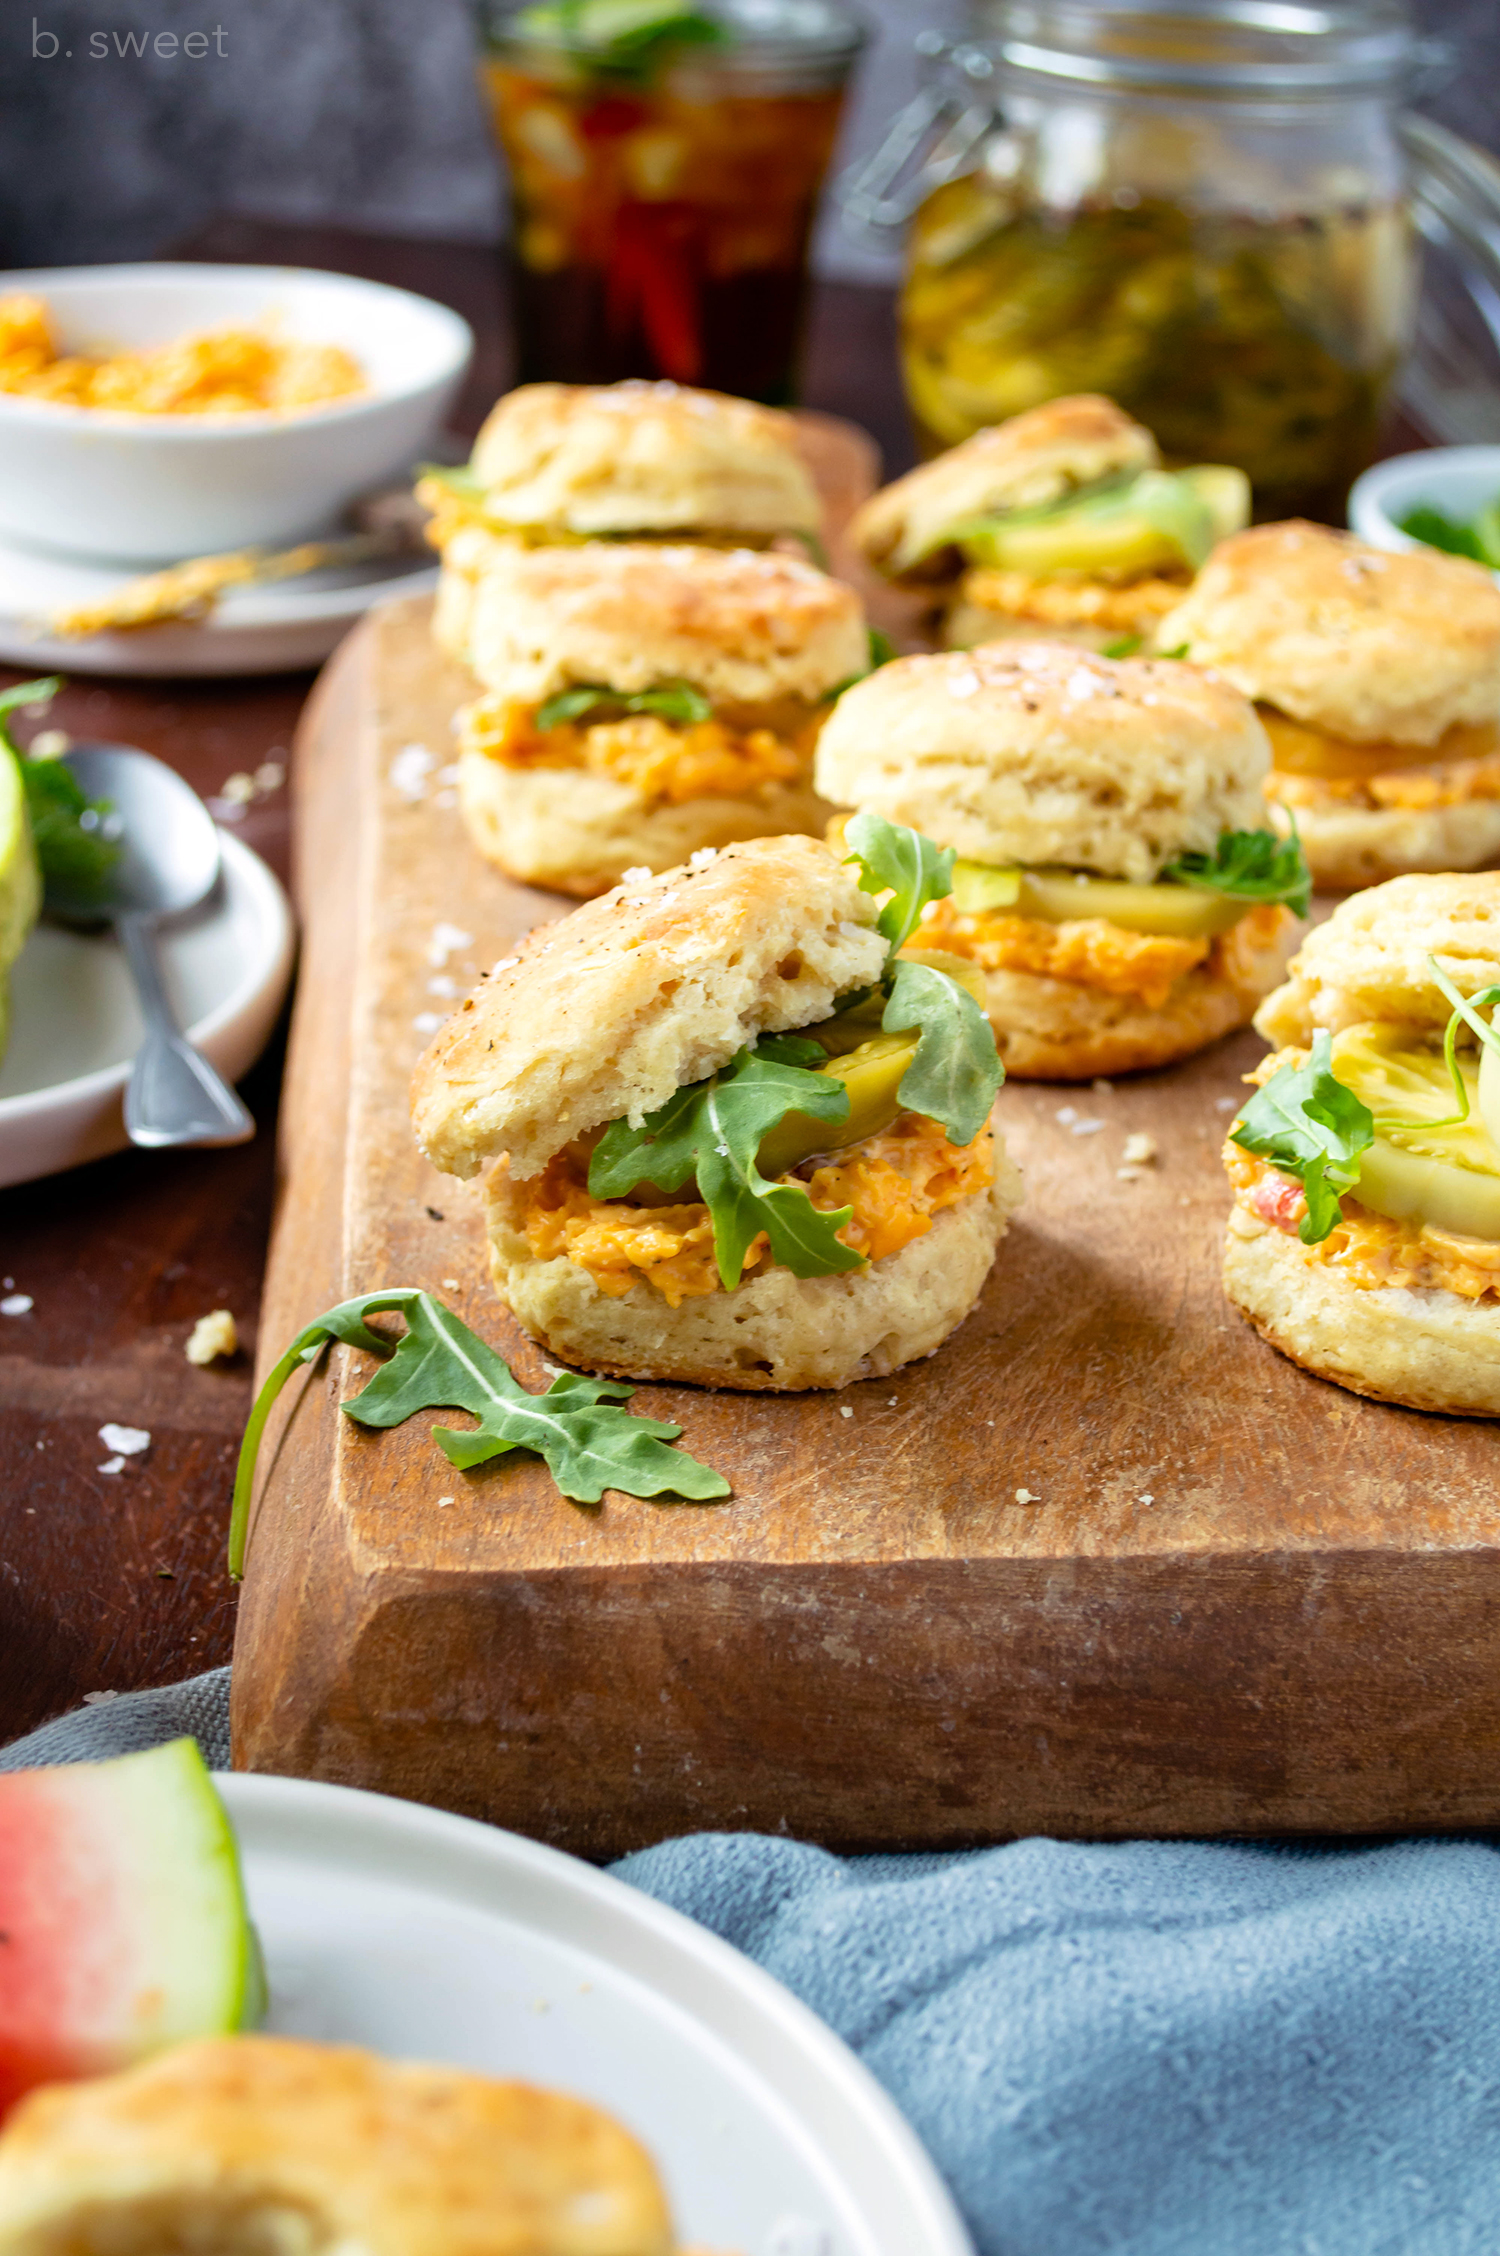 Buttermilk Biscuits with Pimento Cheese and Pickle Green Tomatoes - b.sweet